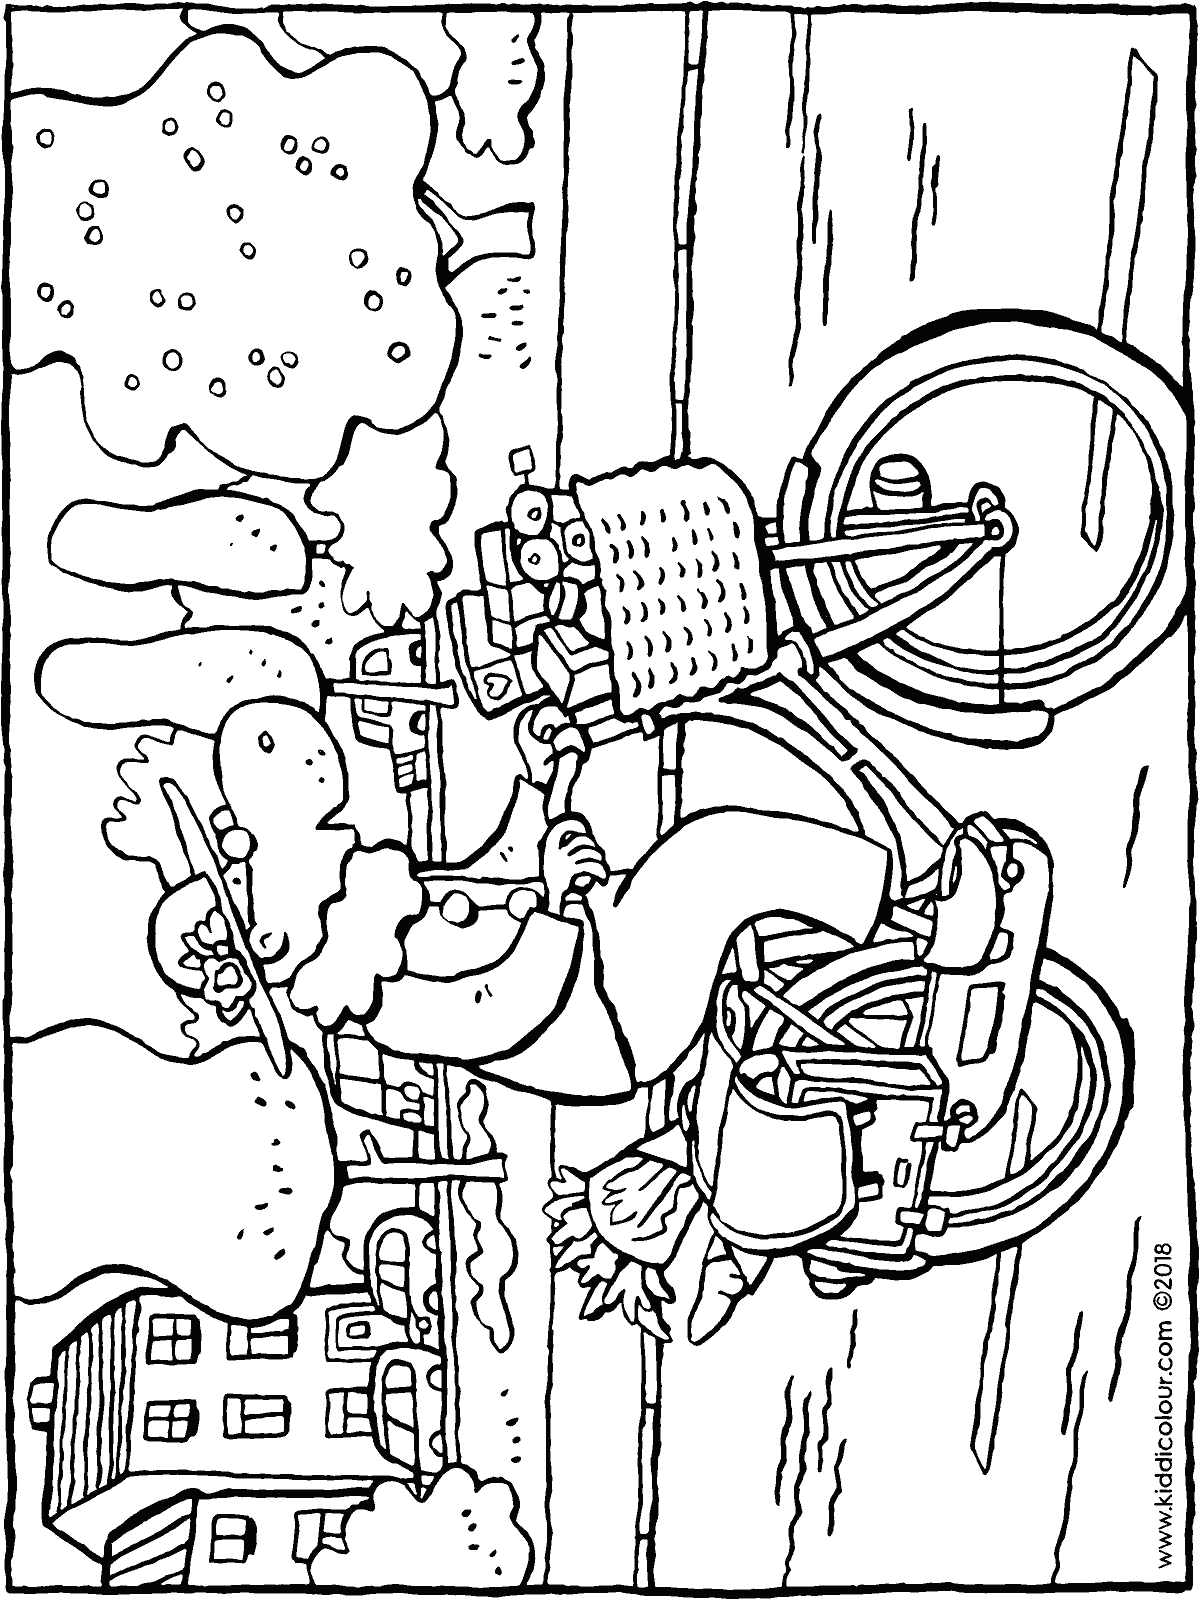 granny goes shopping on her bike colouring page drawing picture 01H